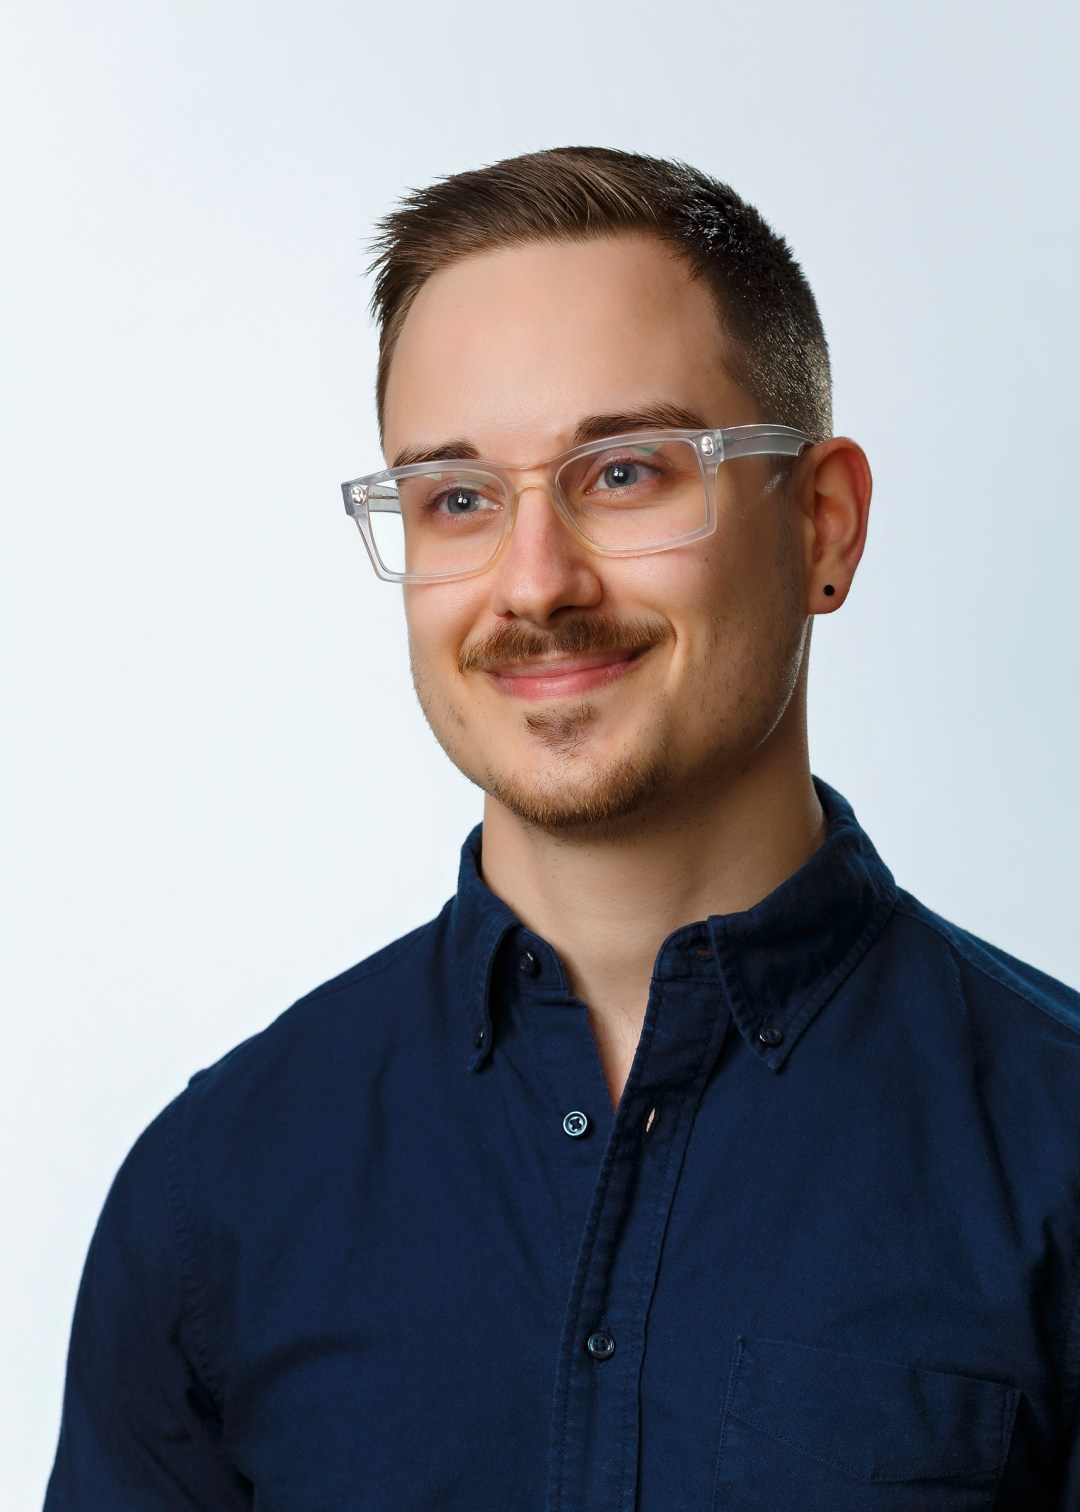 Victor Wakarchuk Registered Social Worker (RSW) Master of Social Work (MSW) Bachelor of Social Work (BSW) Gay Men LGBTQ Counselling Counseling Therapy Mental Health